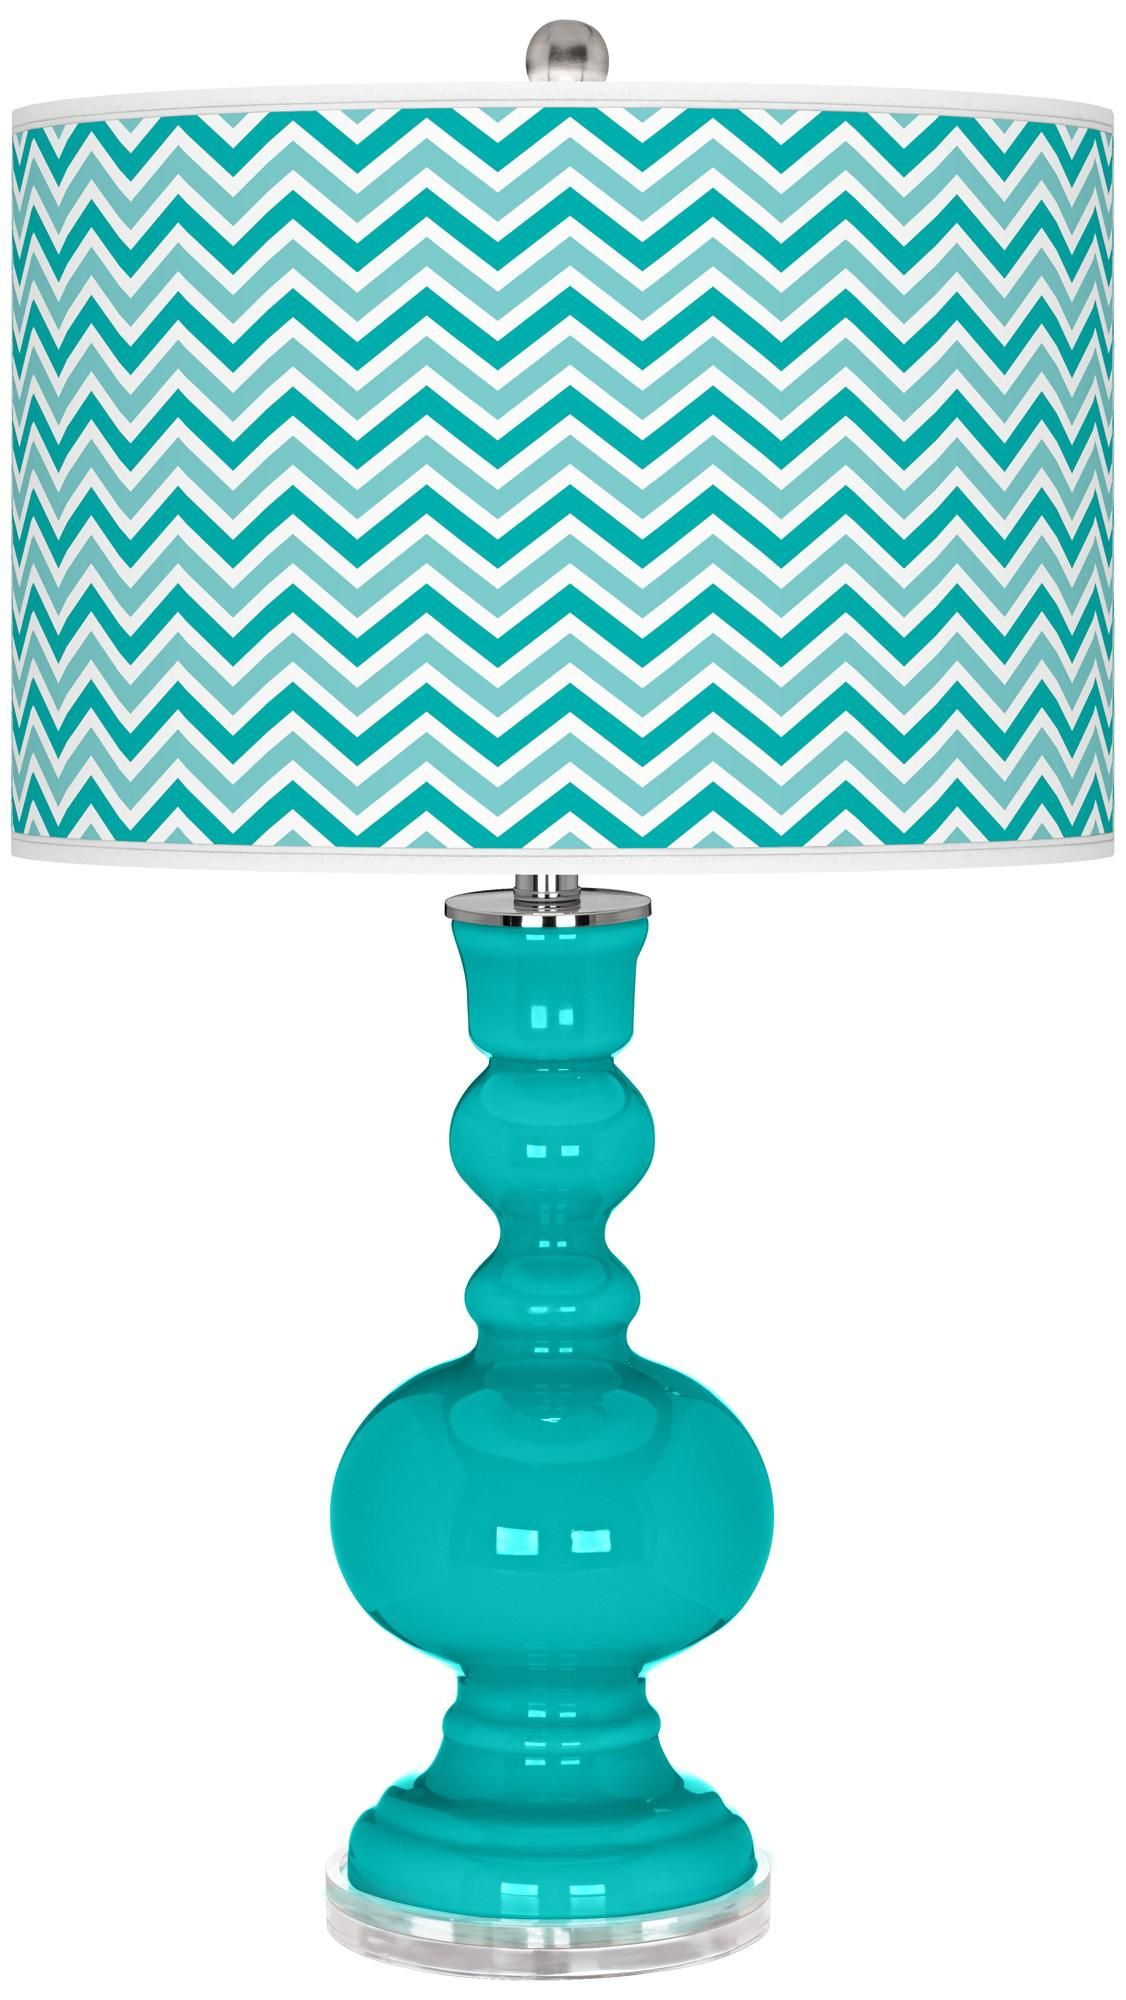 white have circle amazon paper of turquoise aqua rattan shade silver interesting light with stand and glass beside bedroom table metal platform for lamps green lamp bowl